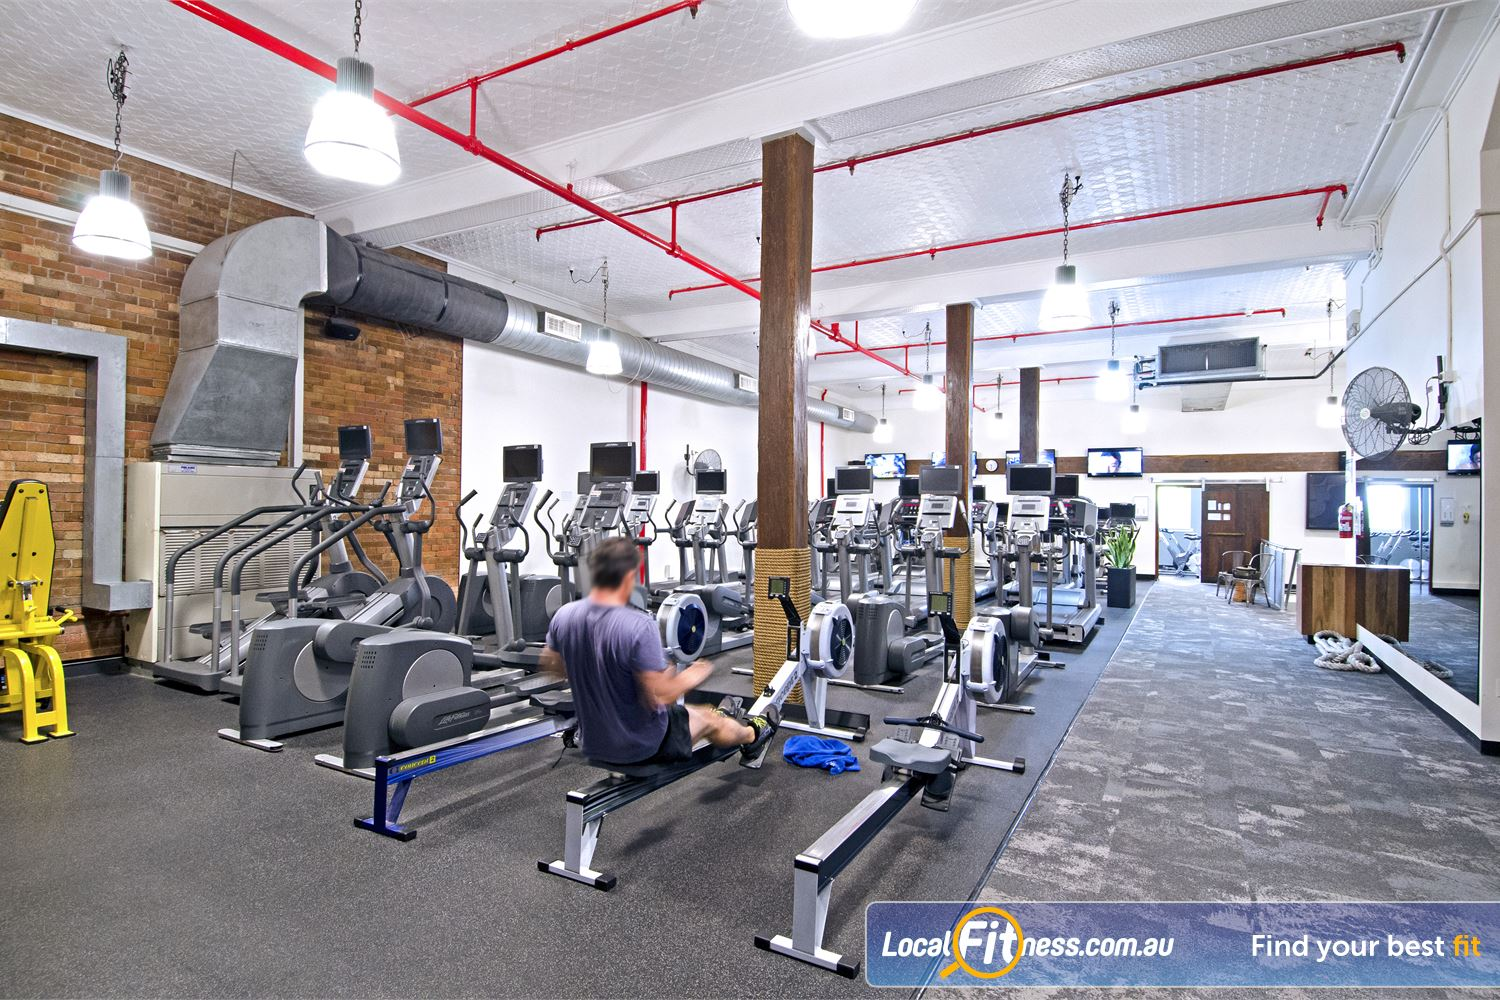 Goodlife Health Clubs Edward St Near George Street The latest cycle bikes, cross trainers and treadmills from Life Fitness.